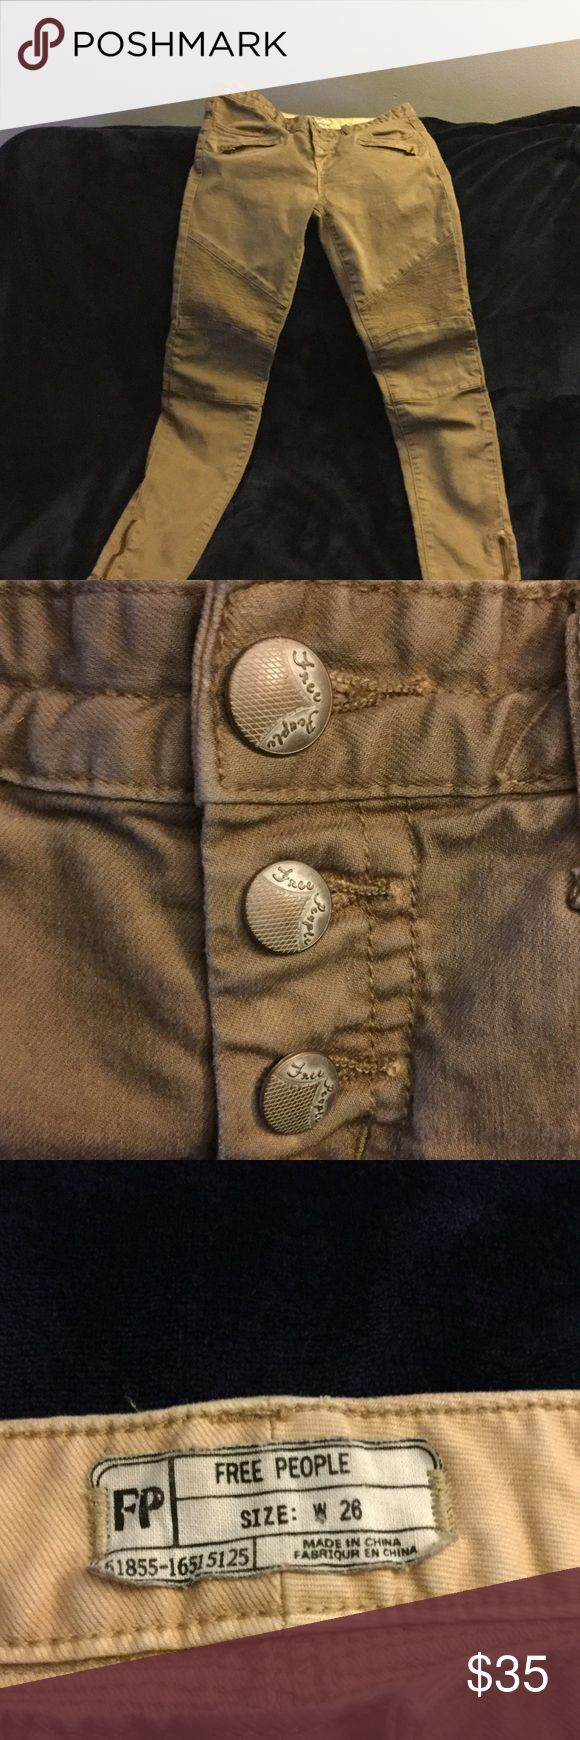 Free People moto khaki jeans *•PRICE DROP•* In excellent condition no wear signs Free People Jeans Skinny